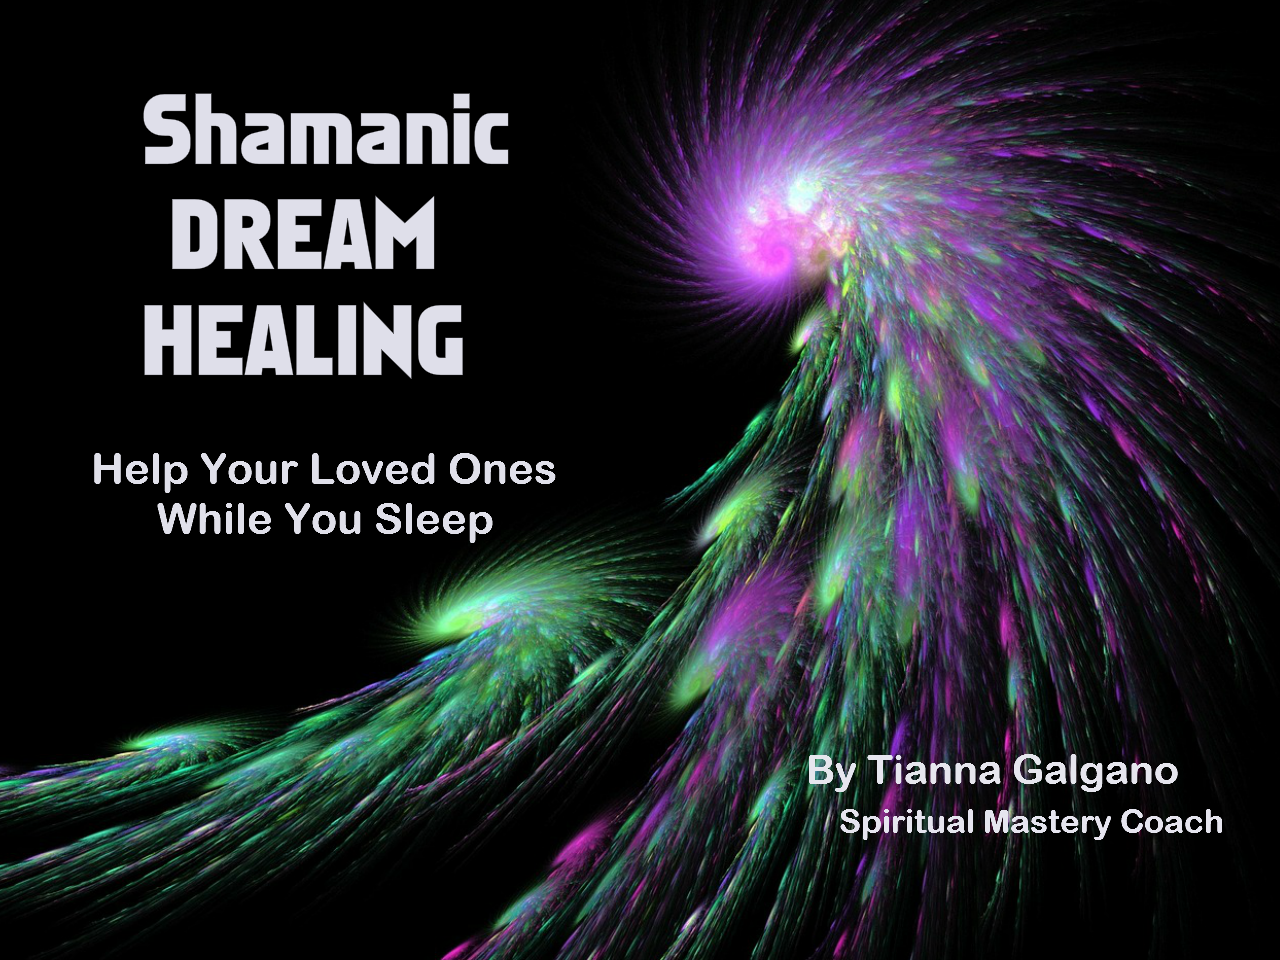 Shamanic Dream Healing book cover